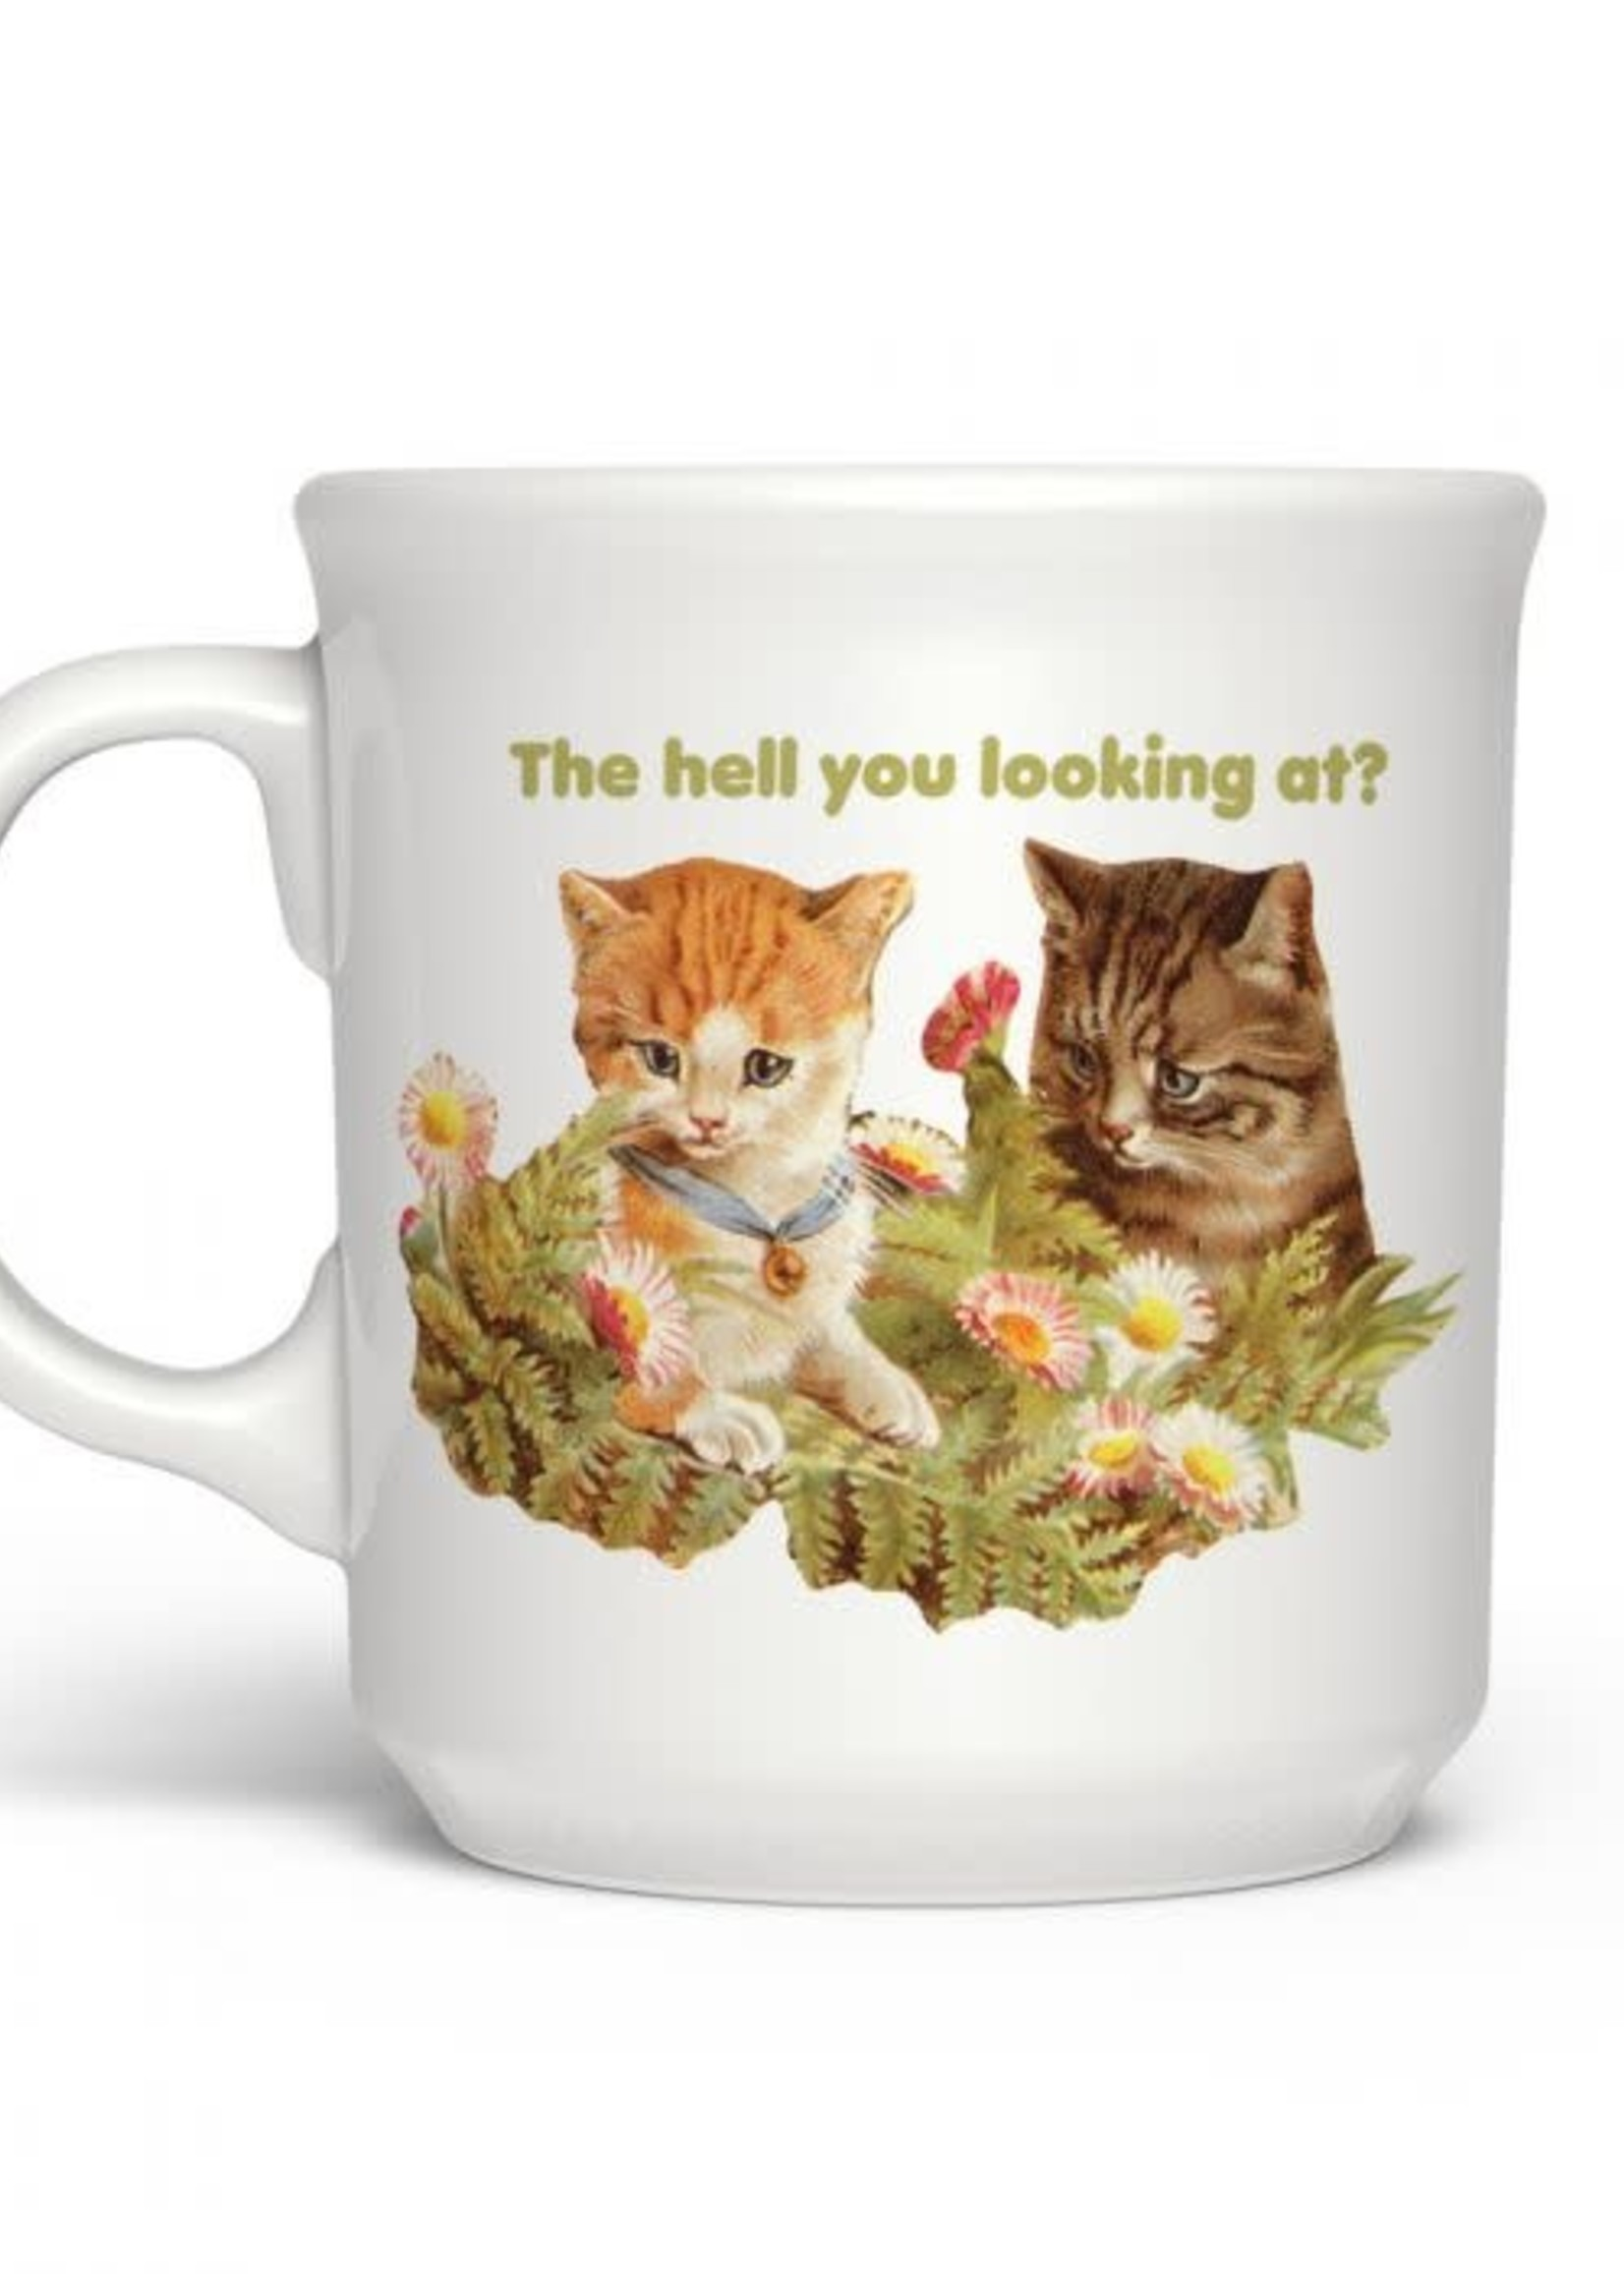 Fred & Friends SAY ANYTHING THE HELL YOU LOOKING AT? MUG